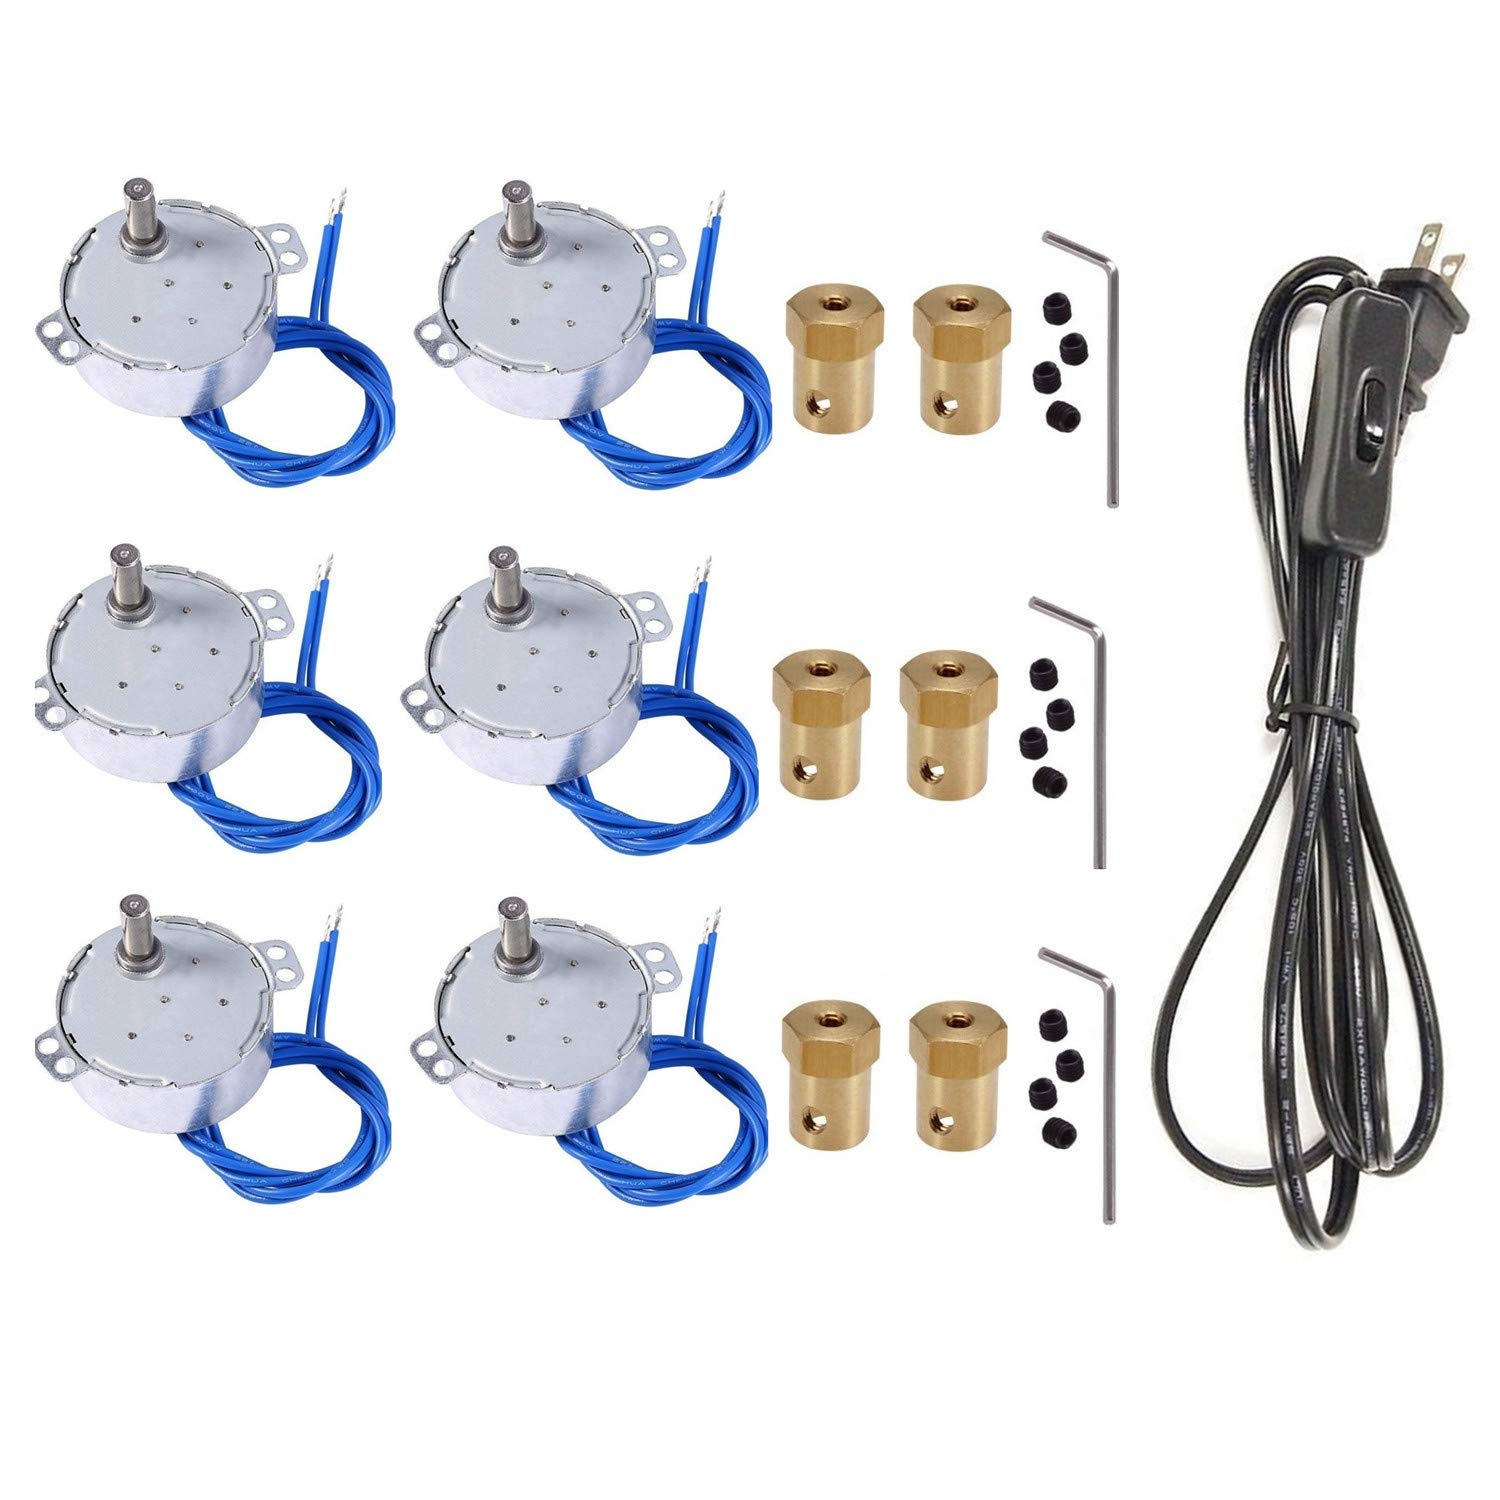 6PCS Synchronous Synchron Motor Turntable Motor 50//60Hz AC100~127V CCW//CW 4W with 7mm Flexible Coupling Connector And 6ft Power Cord Switch Plug For Cup Turner,Cuptisserie,or Guide Motor 5-6RPM